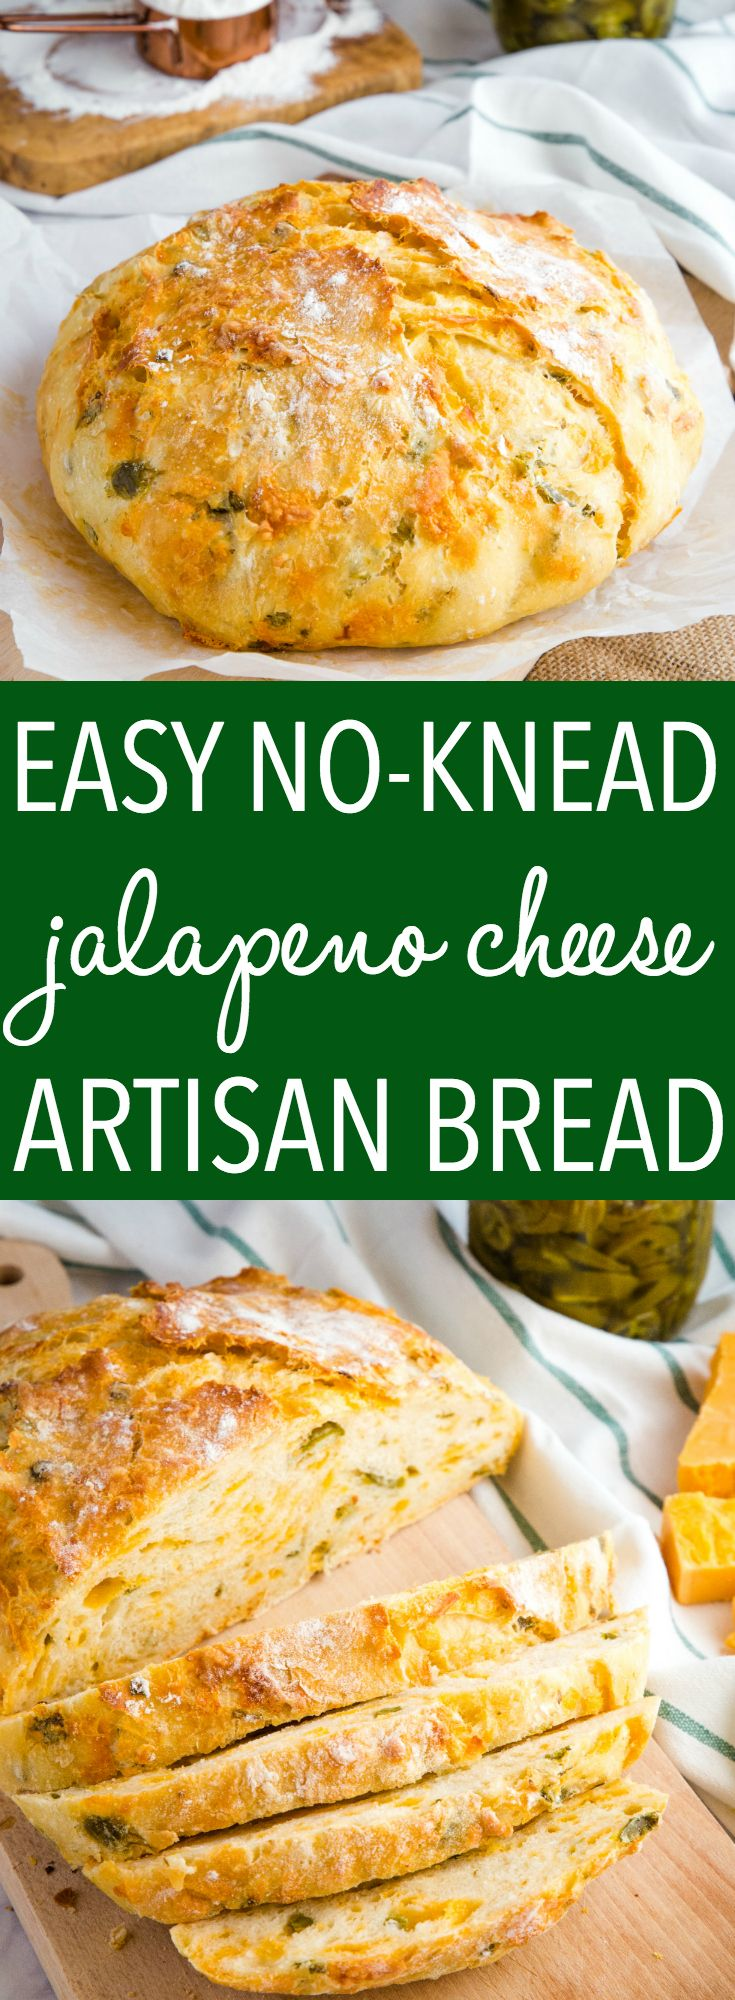 This Easy No Knead Jalapeno Cheese Artisan Bread is the BEST savoury bread for sandwiches! It's pac